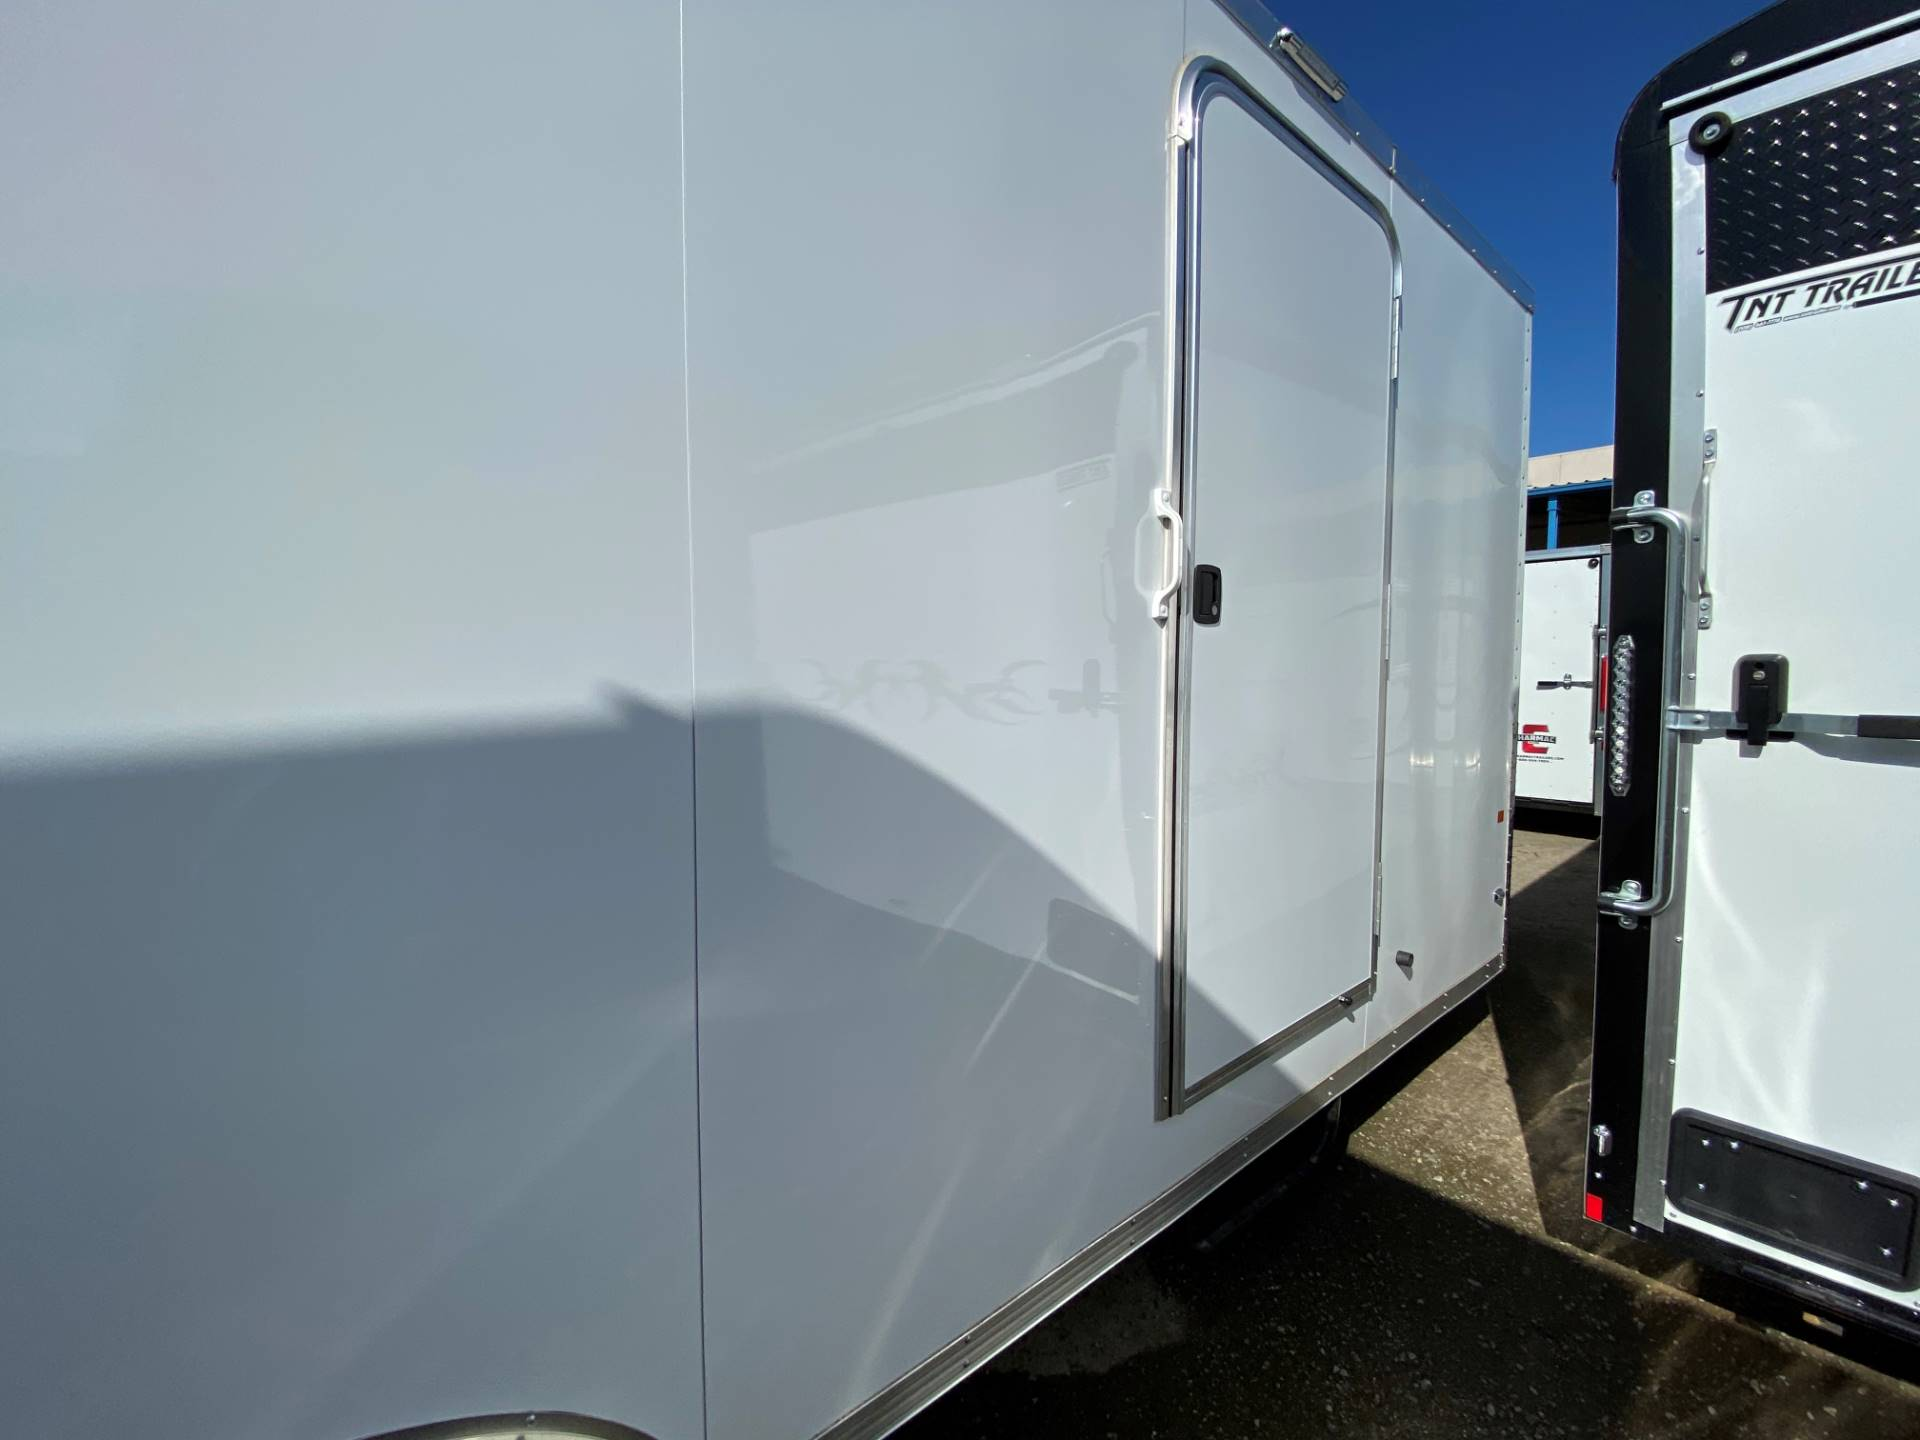 2020 Charmac Trailers 28' STEALTH TRI SPORT in Elk Grove, California - Photo 11